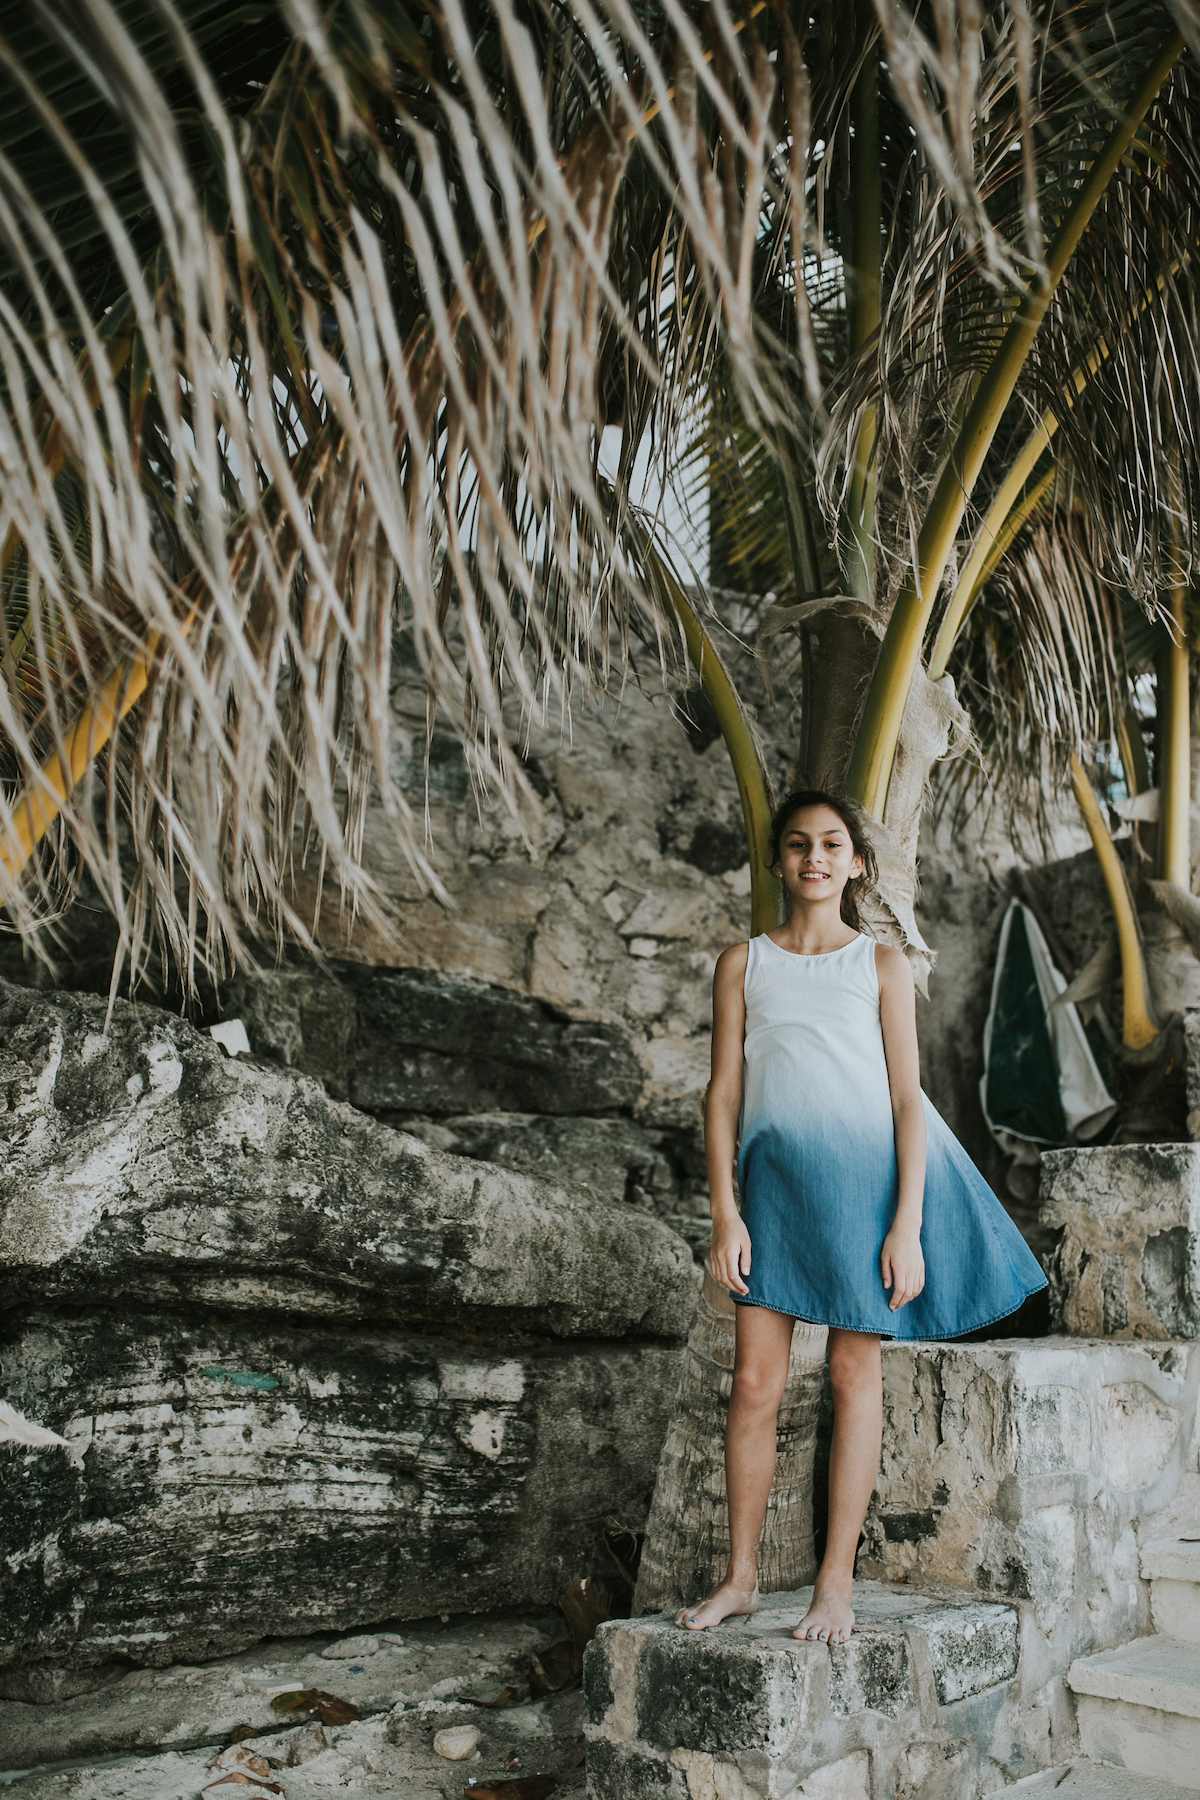 Girl by a palm tree in Cancun Mexico